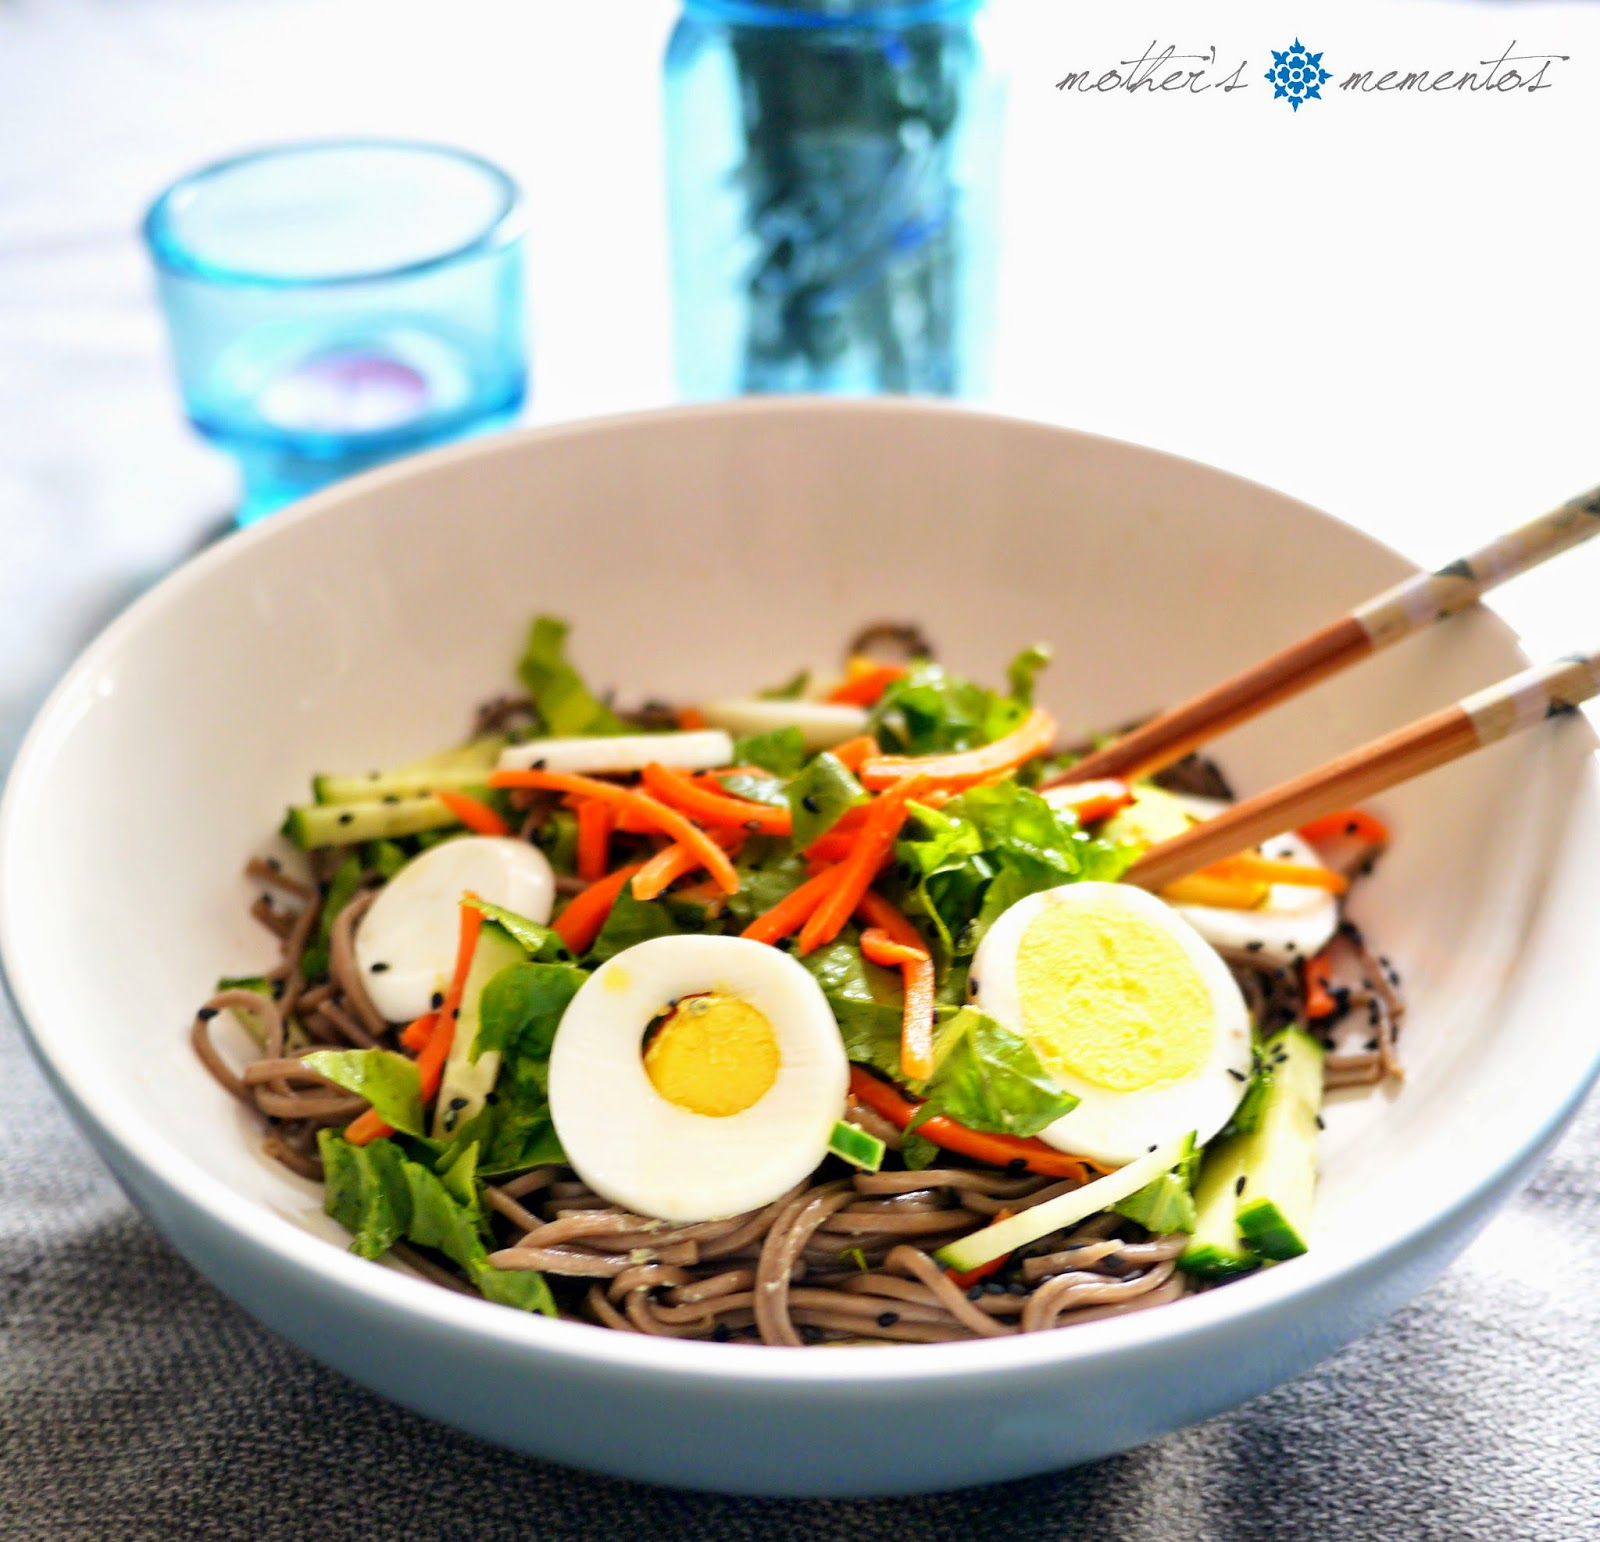 Cold Soba Noodles with Egg and Vegetables | Mother's Mementos